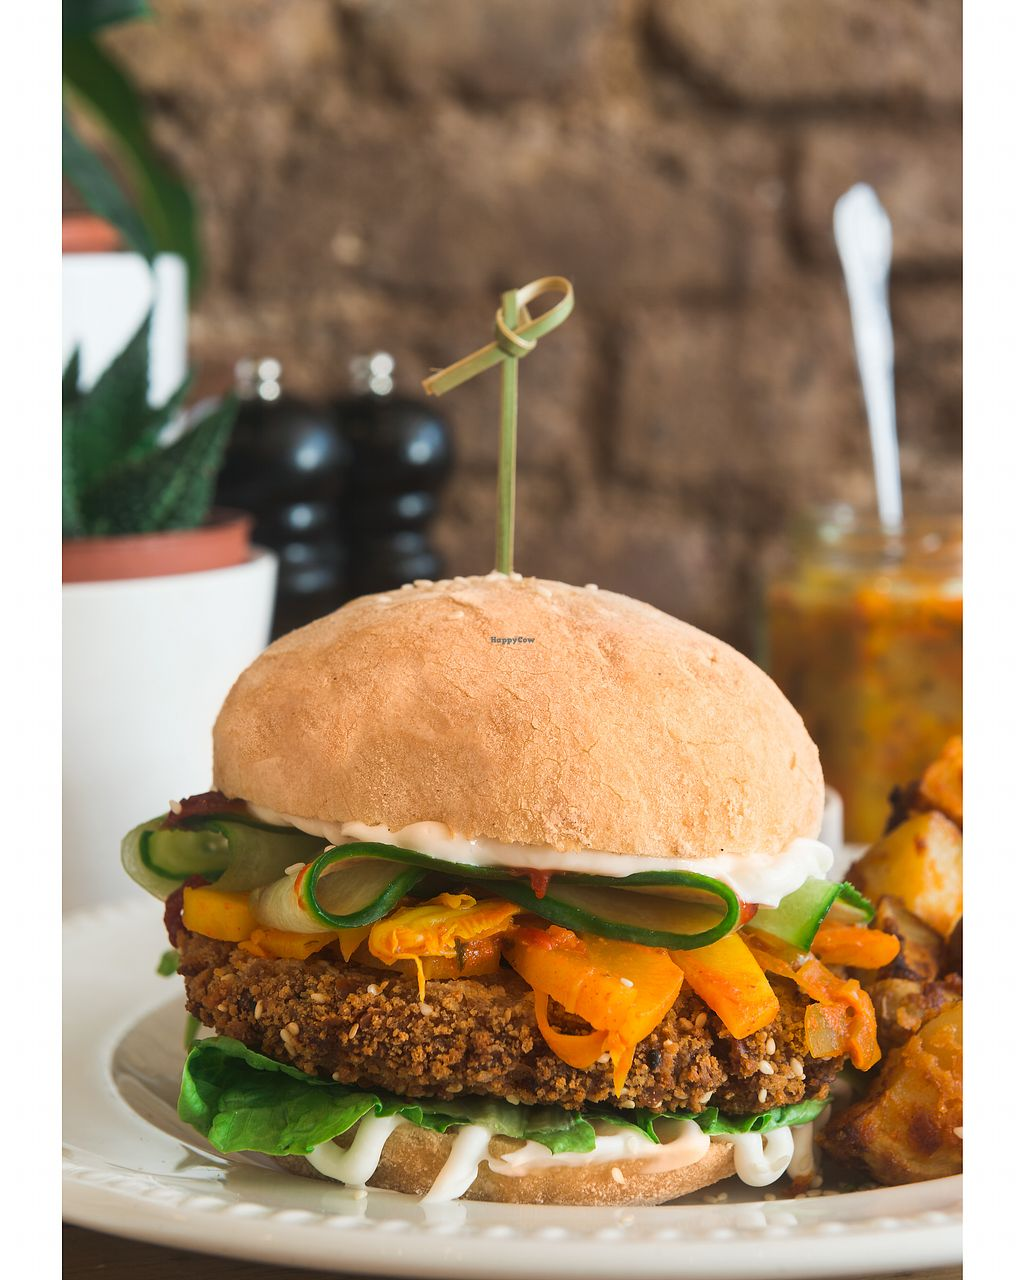 """Photo of Miranda Cafe  by <a href=""""/members/profile/GabrielJ.Diaz"""">GabrielJ.Diaz</a> <br/>NEW Korean style Vegan Kimchi Burger. Crispy burger with fresh lemongrass, mixed vegetables, coriander and chilli, coated with black onion and sesame, spicy kimchi cabbage pickle and gochujang chilli sauce ???? <br/> April 8, 2018  - <a href='/contact/abuse/image/95778/382288'>Report</a>"""